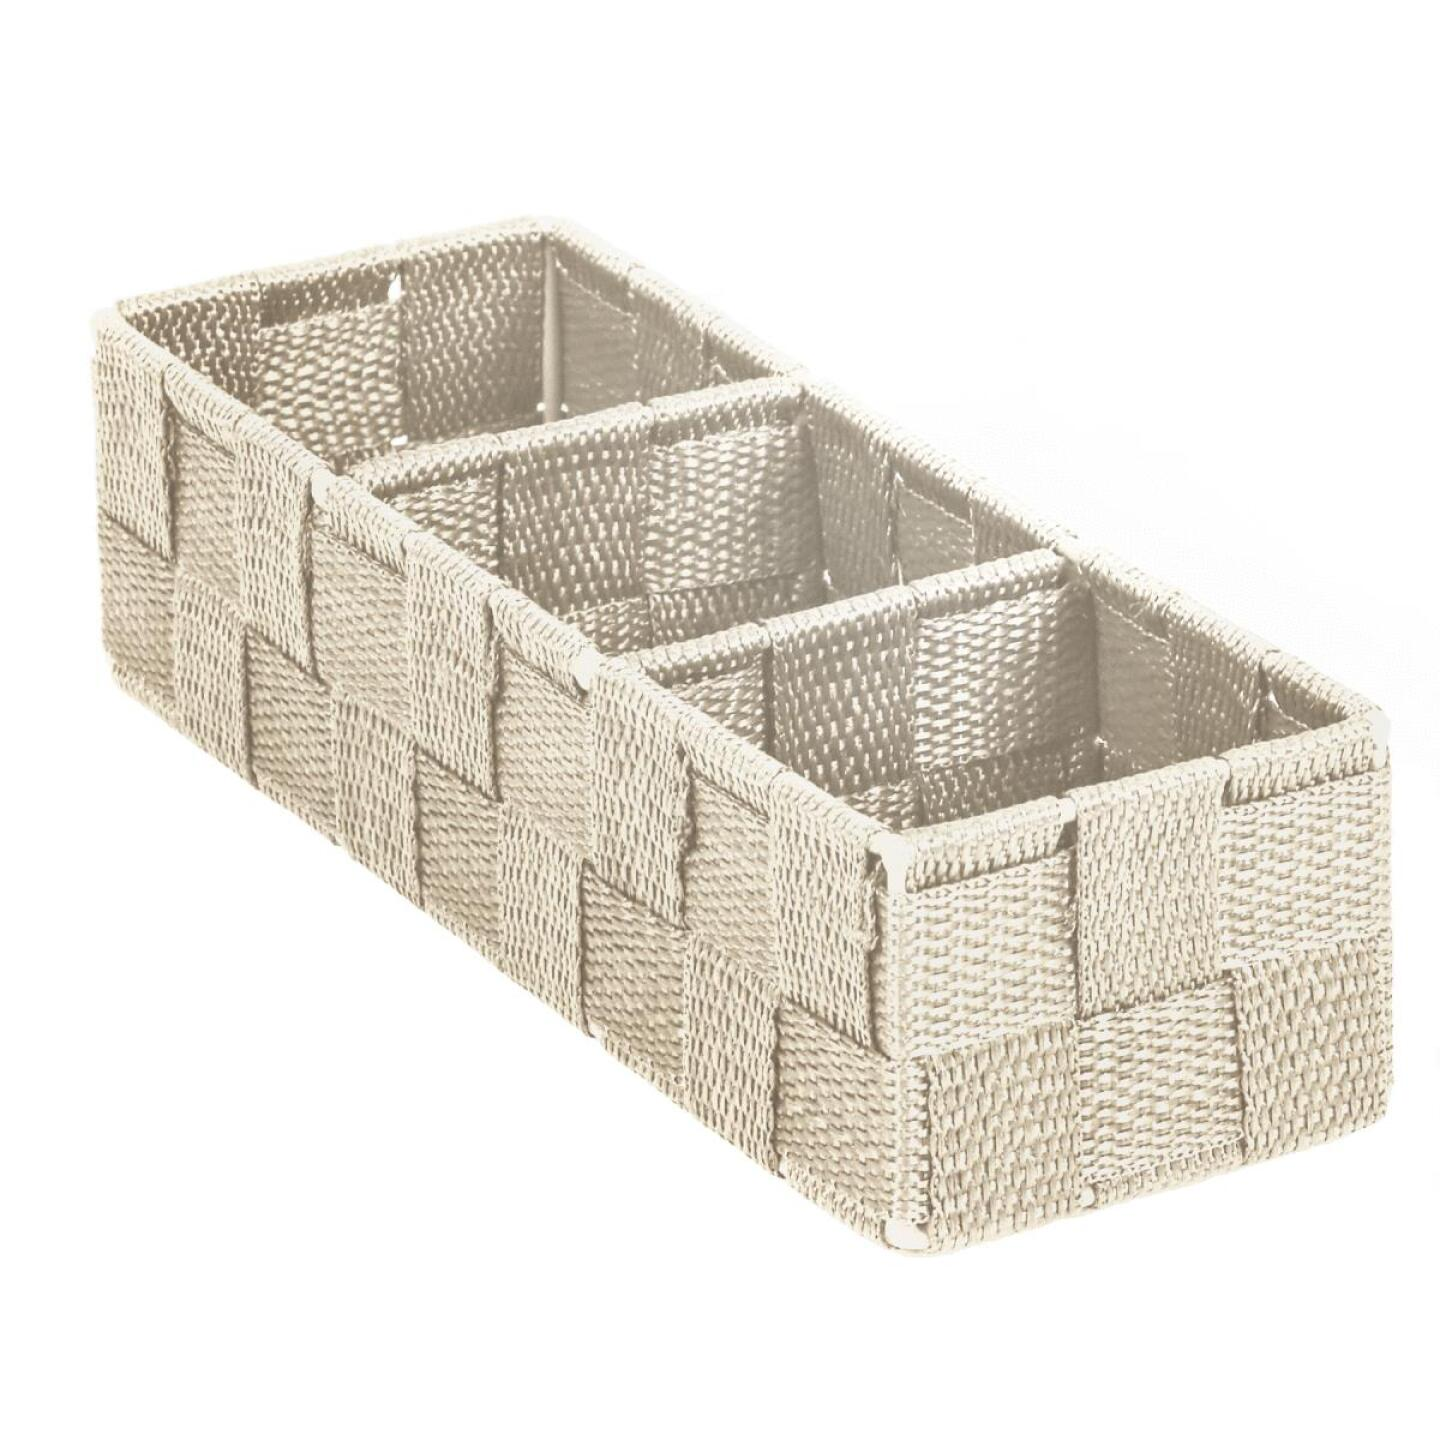 Home Impressions 3.25 In. W. x 2.25 In. H. x 9.5 In. L. Woven Storage Tray, Beige Image 1